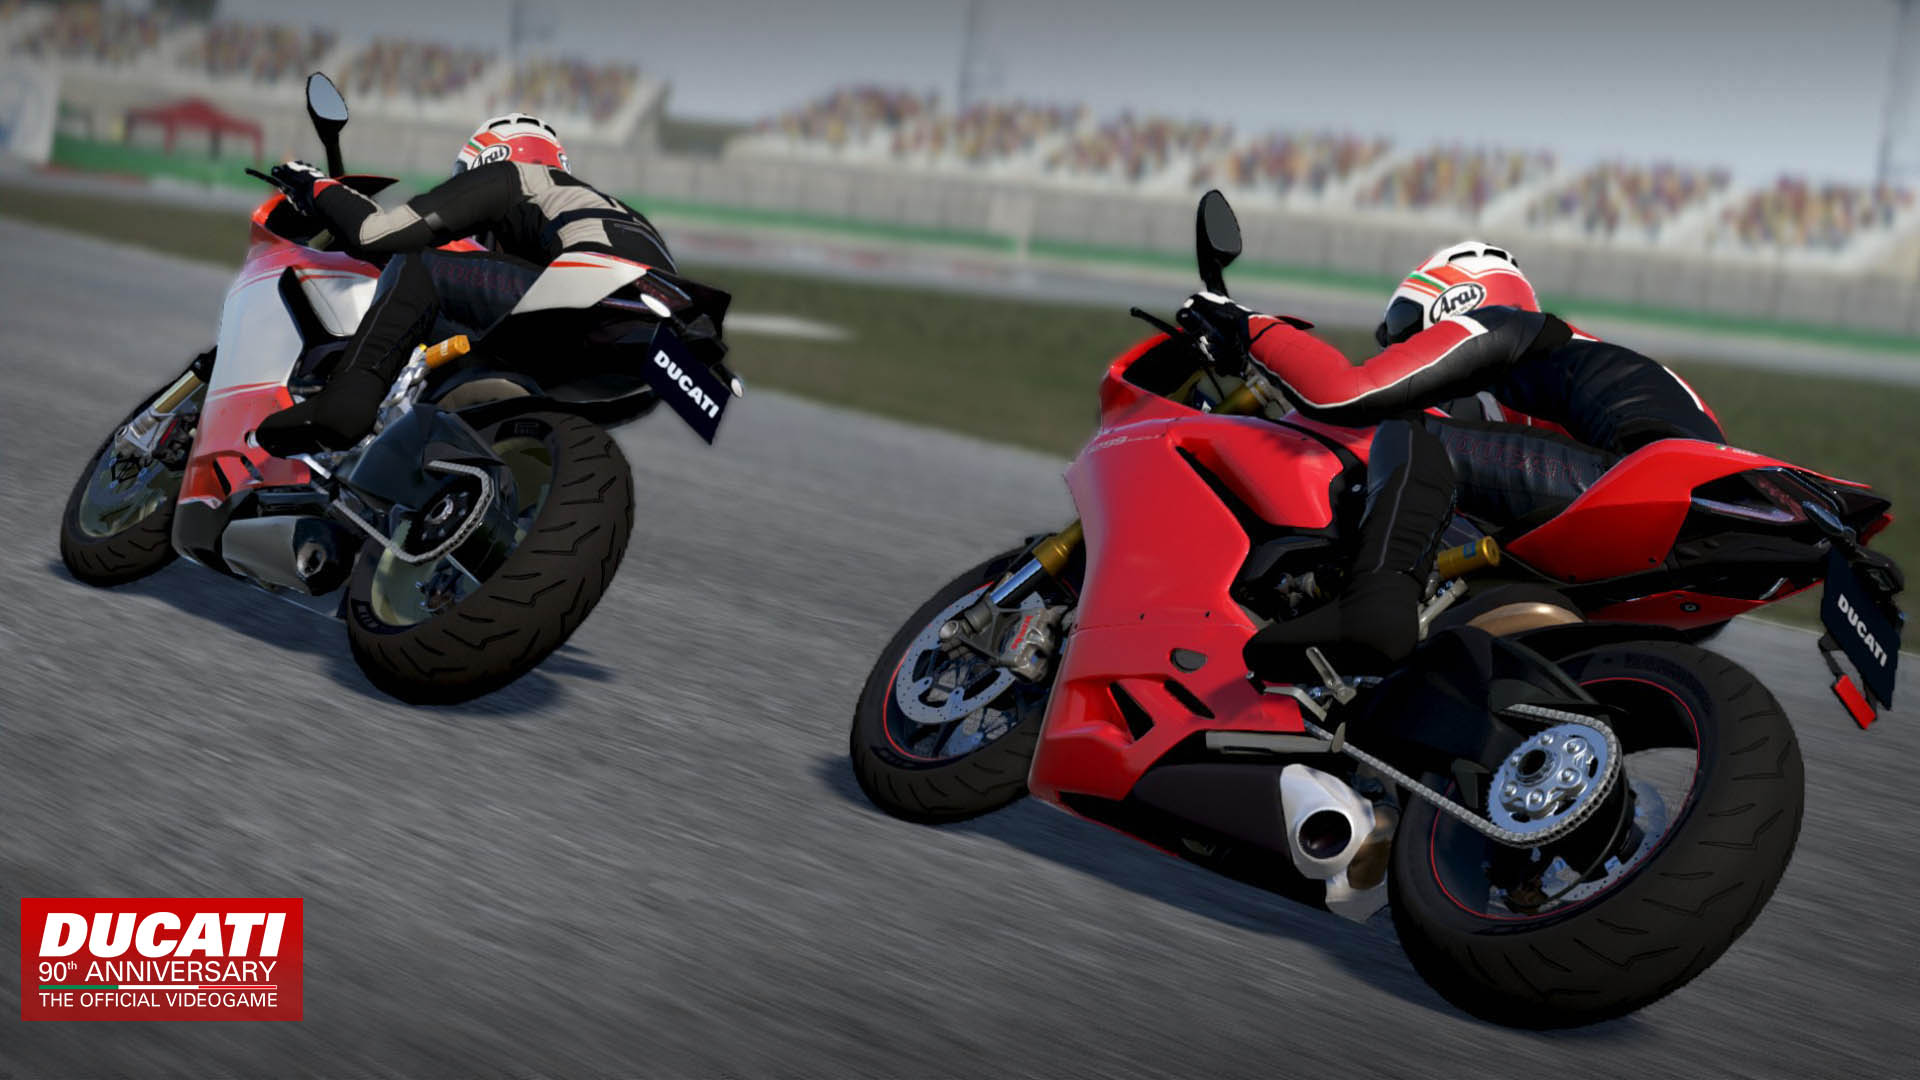 Ducati - 90th Anniversary: The Official Videogame